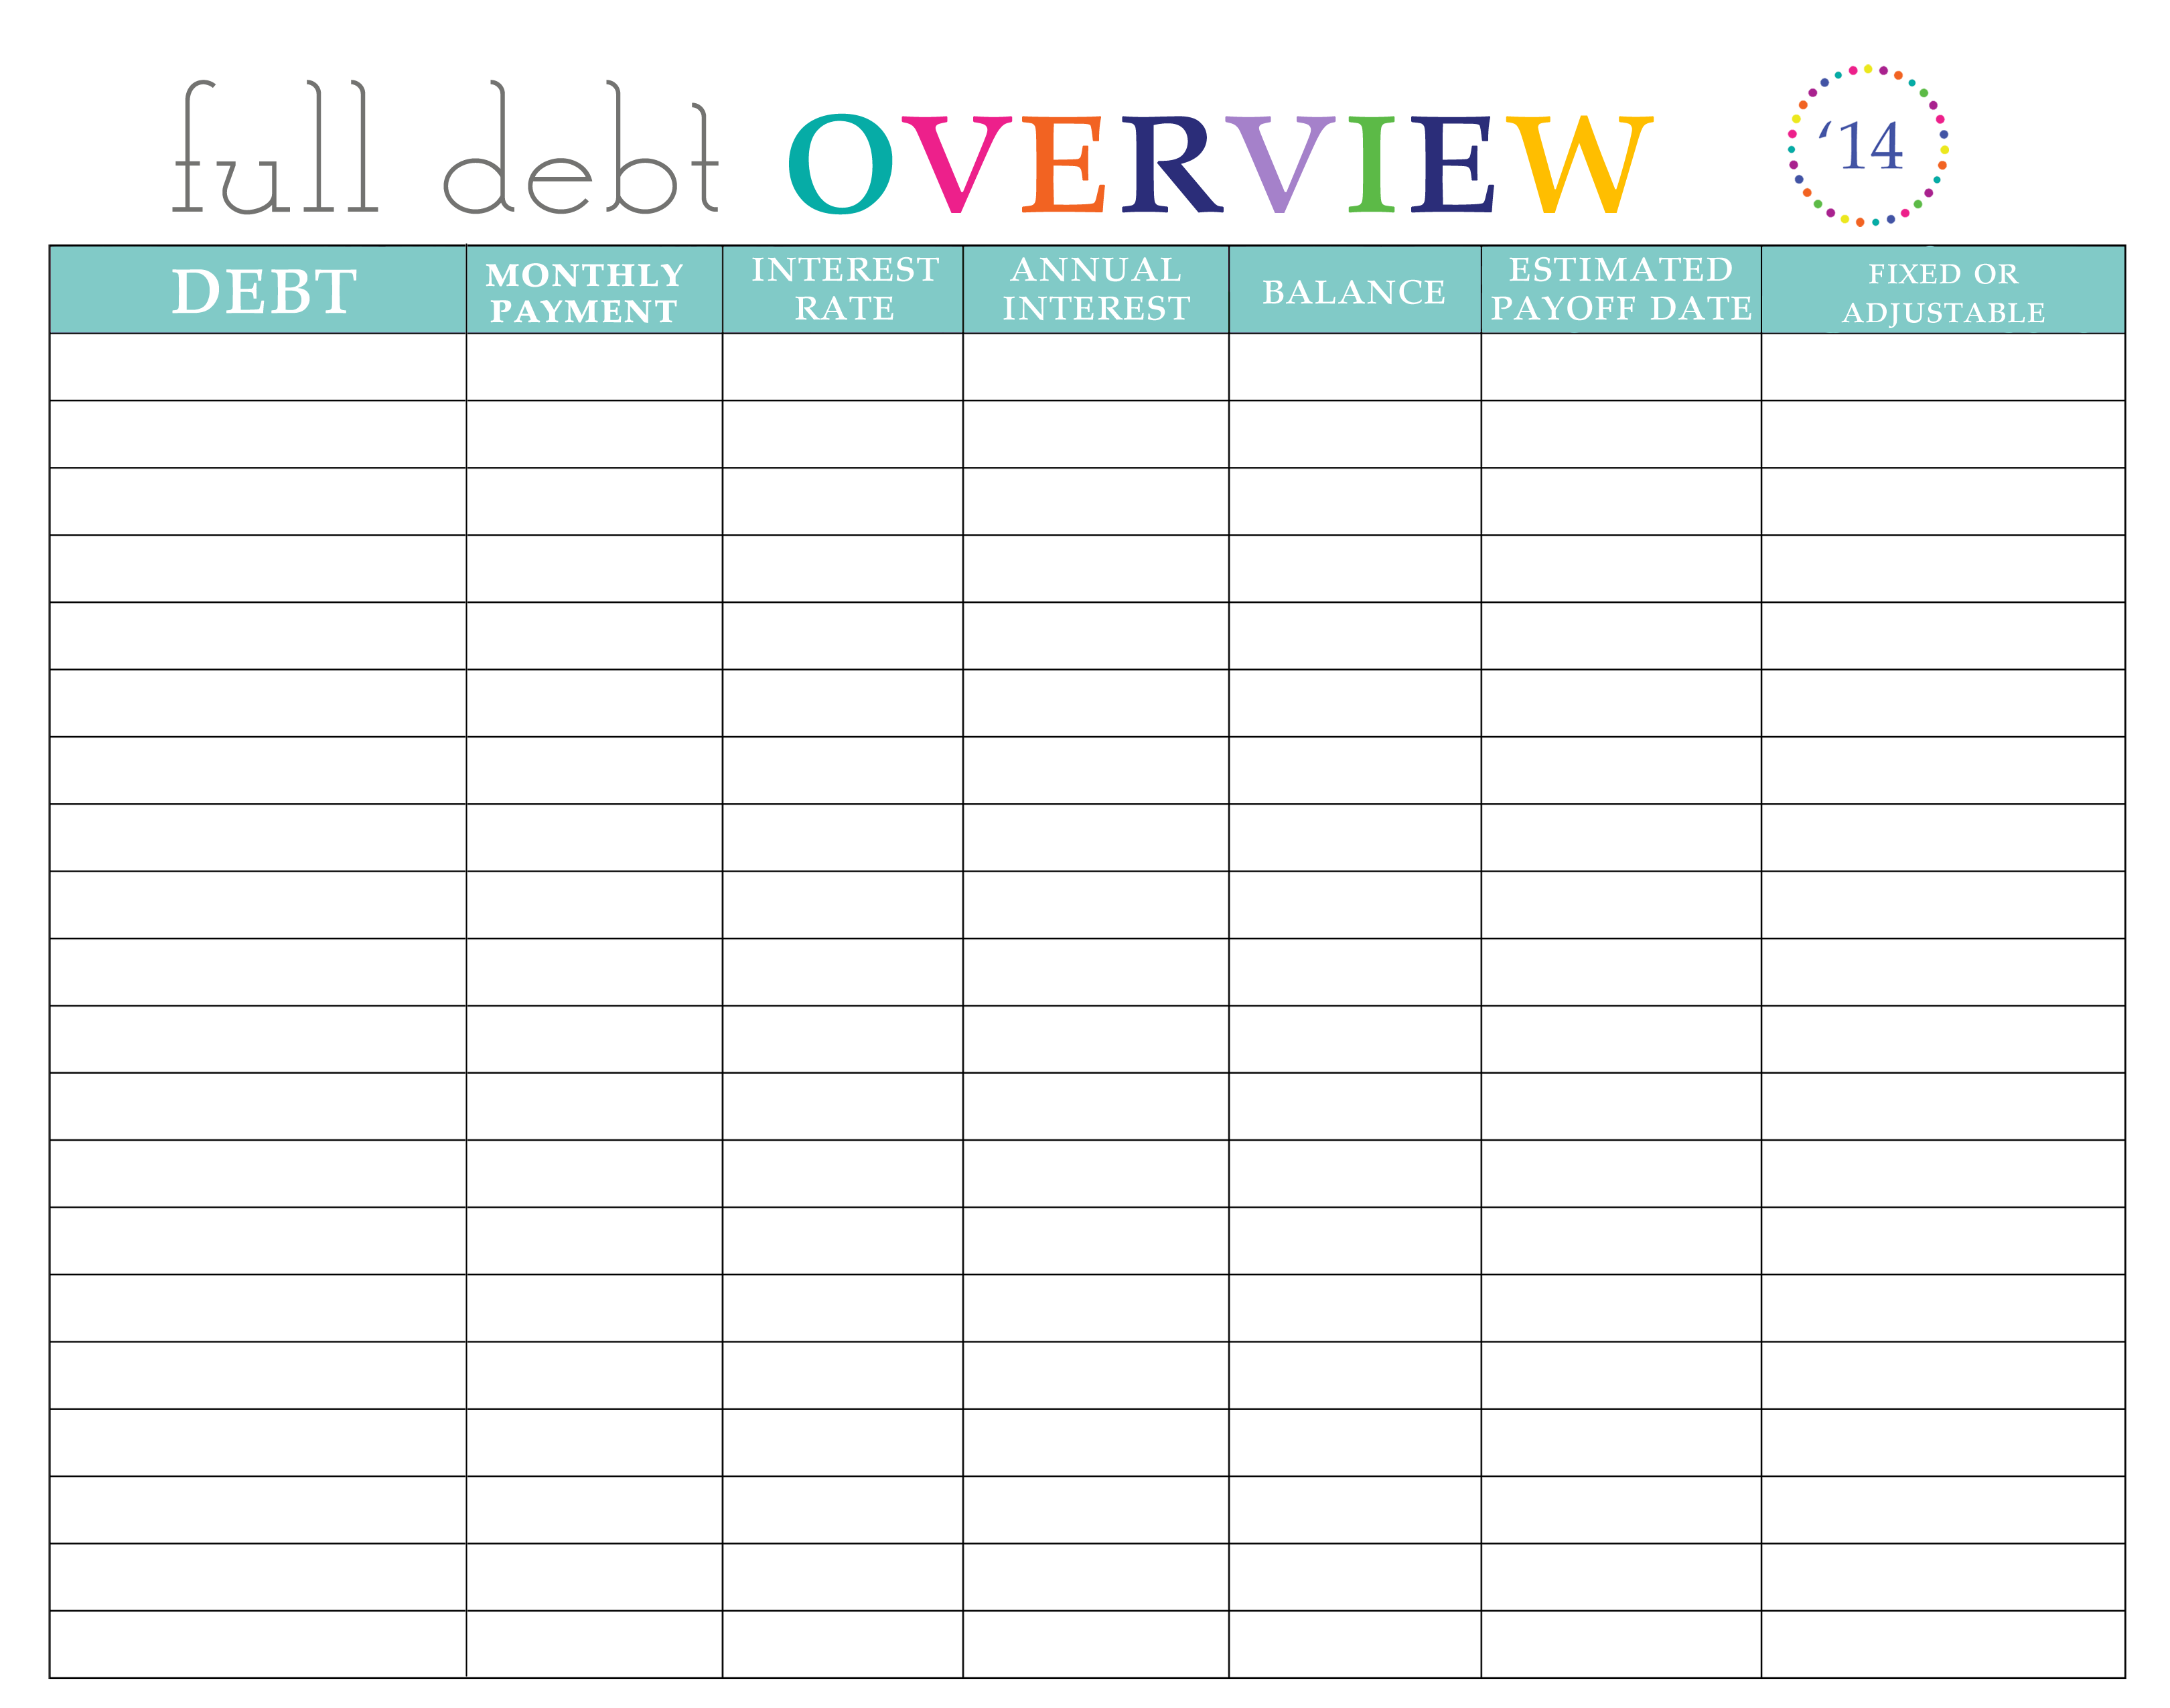 pay off debt worksheet   Yelom.agdiffusion.com